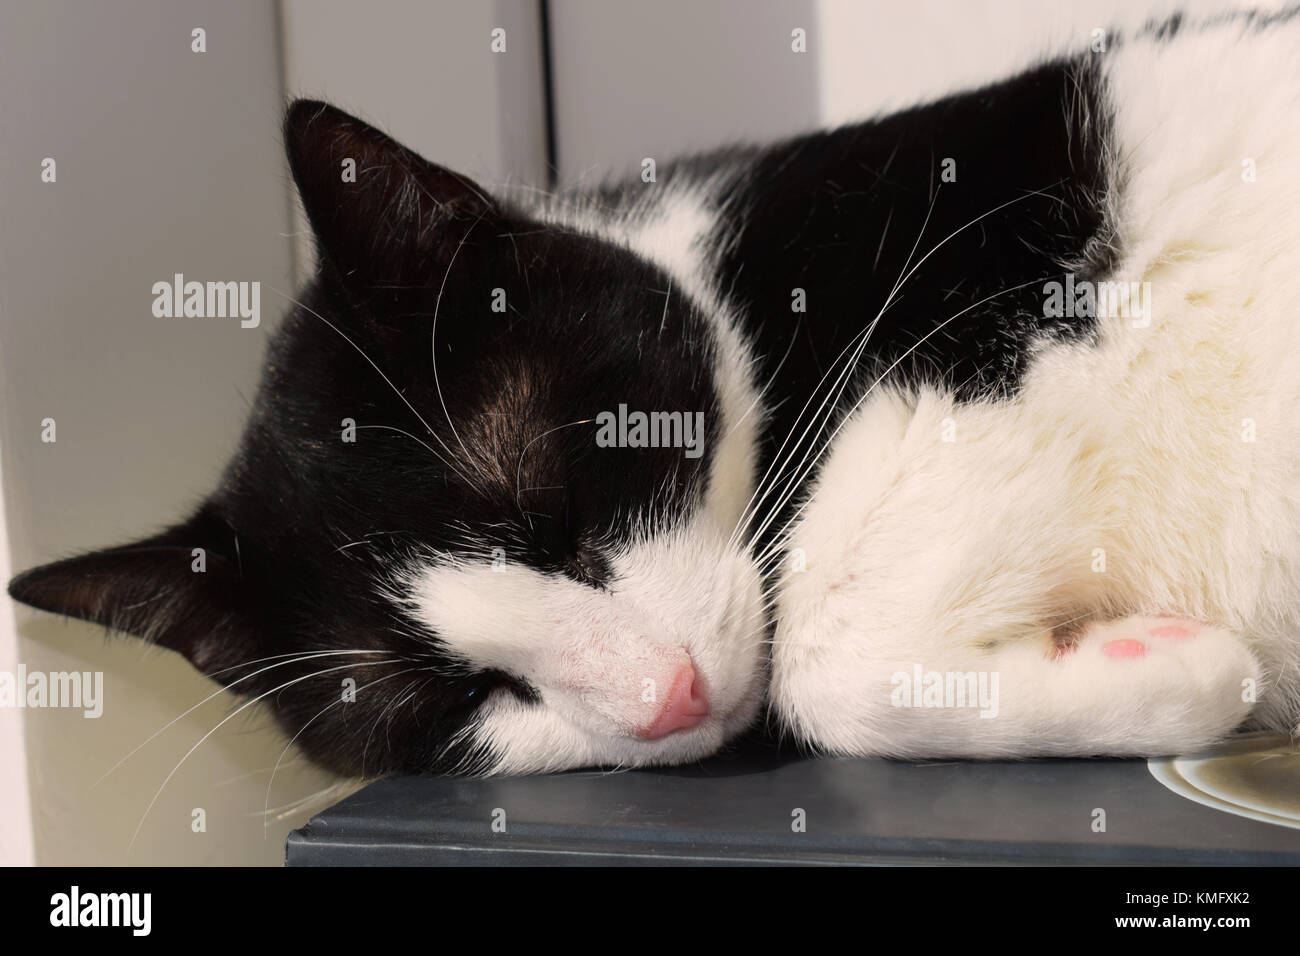 Black and white cat sleeping on a book - Stock Image